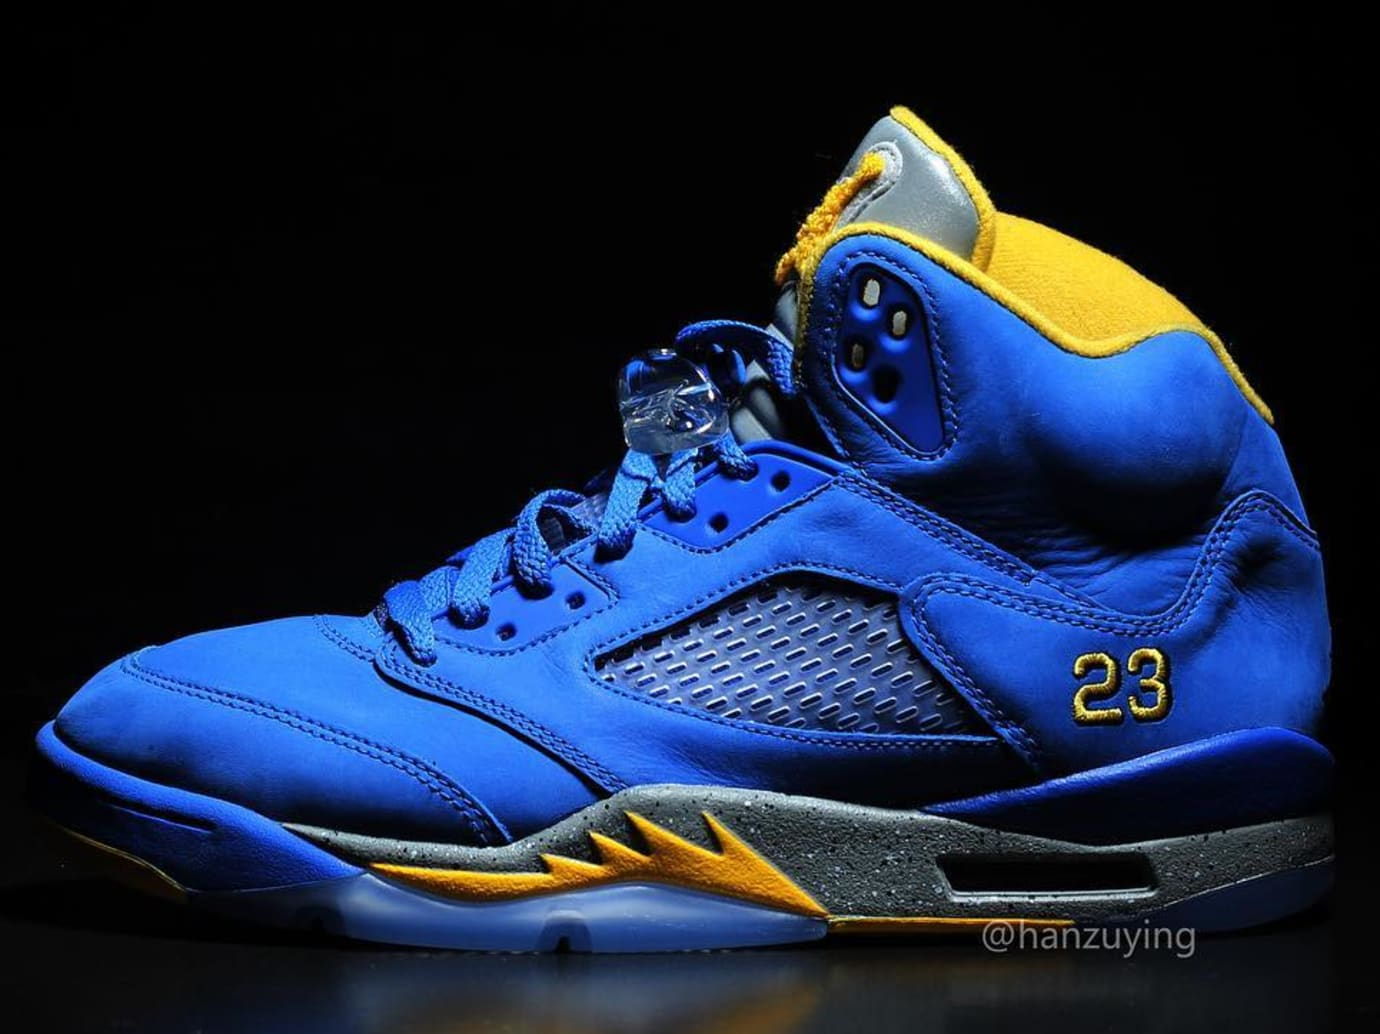 9acfa363ab11 Image via Instagram   hanzuying Air Jordan 5 JSP  Laney  Varsity Royal  CS2720-400